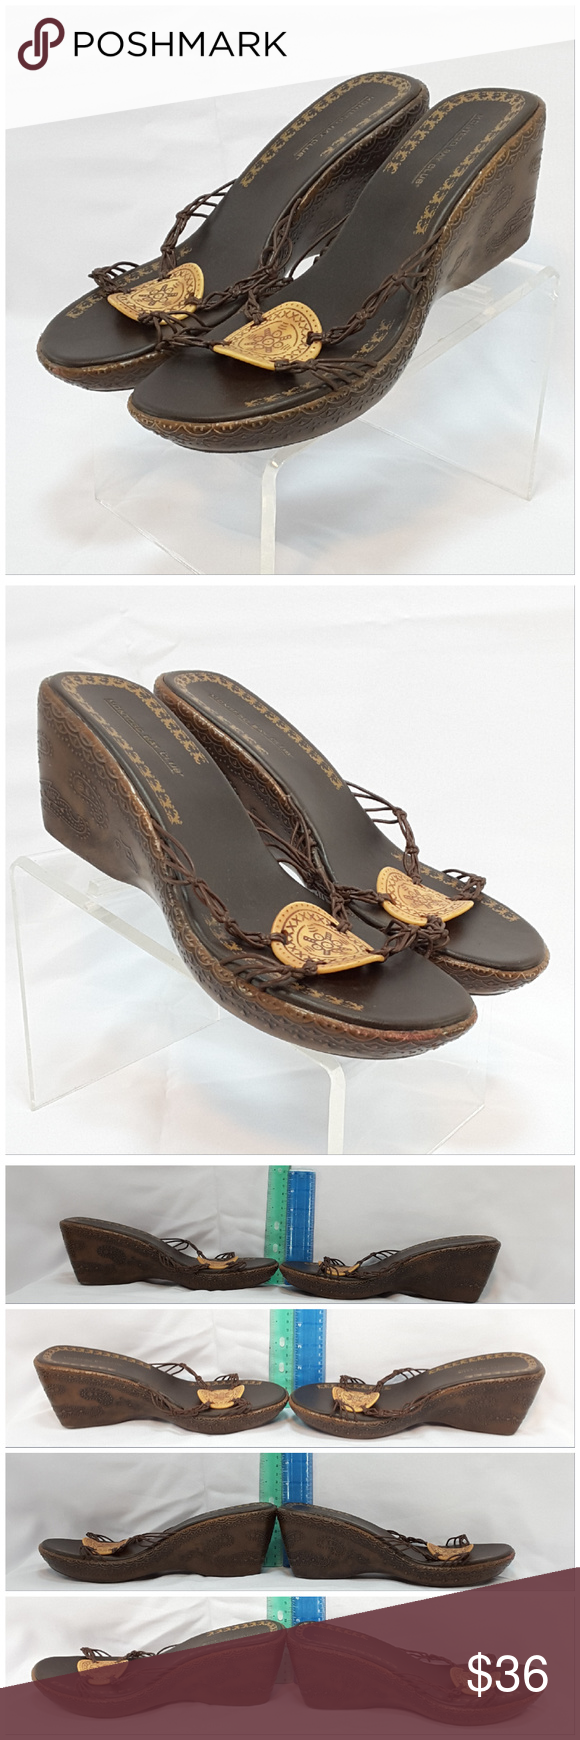 MONTEGO BAY CLUB, Wedge Sandals, size